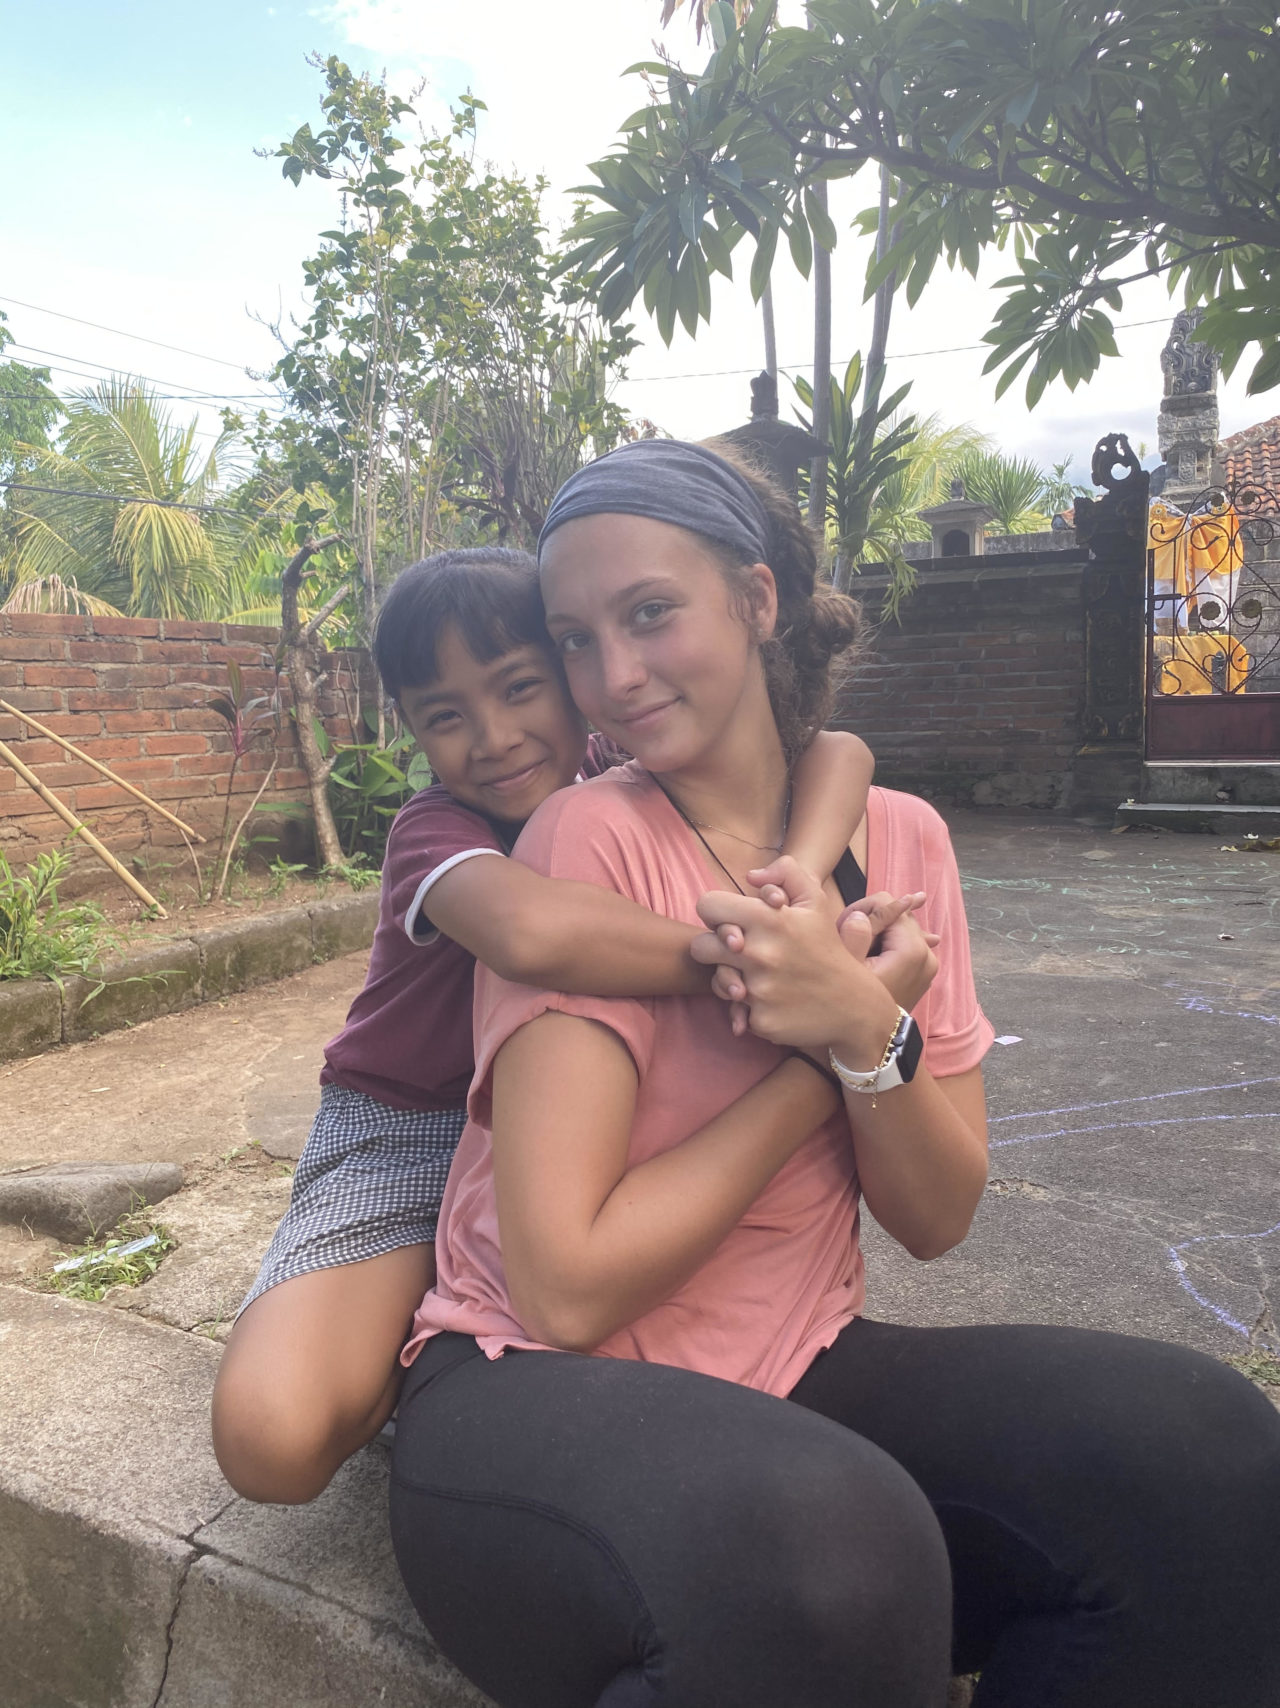 Bonding with the children in Bali